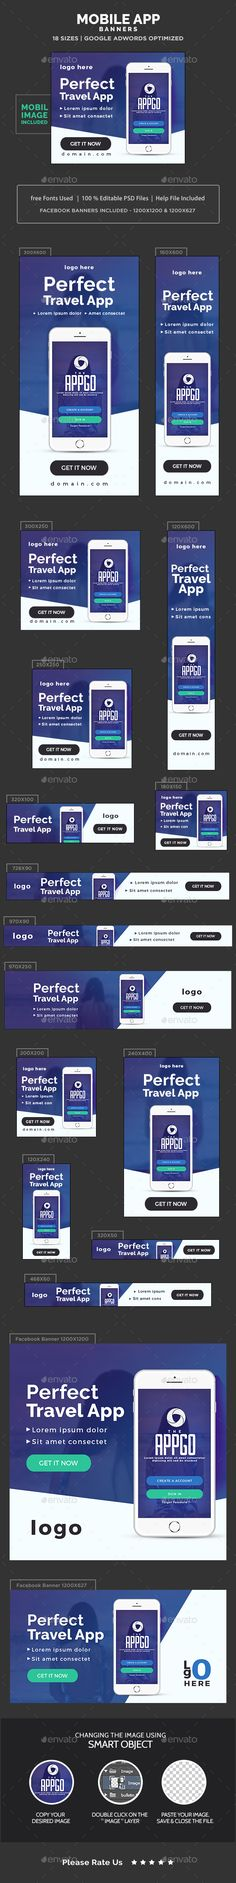 App Store Banners Design Template - Banners & Ads Web Elements Template PSD. Download here: https://graphicriver.net/item/app-store-banners/17741129?s_rank=1&ref=yinkira